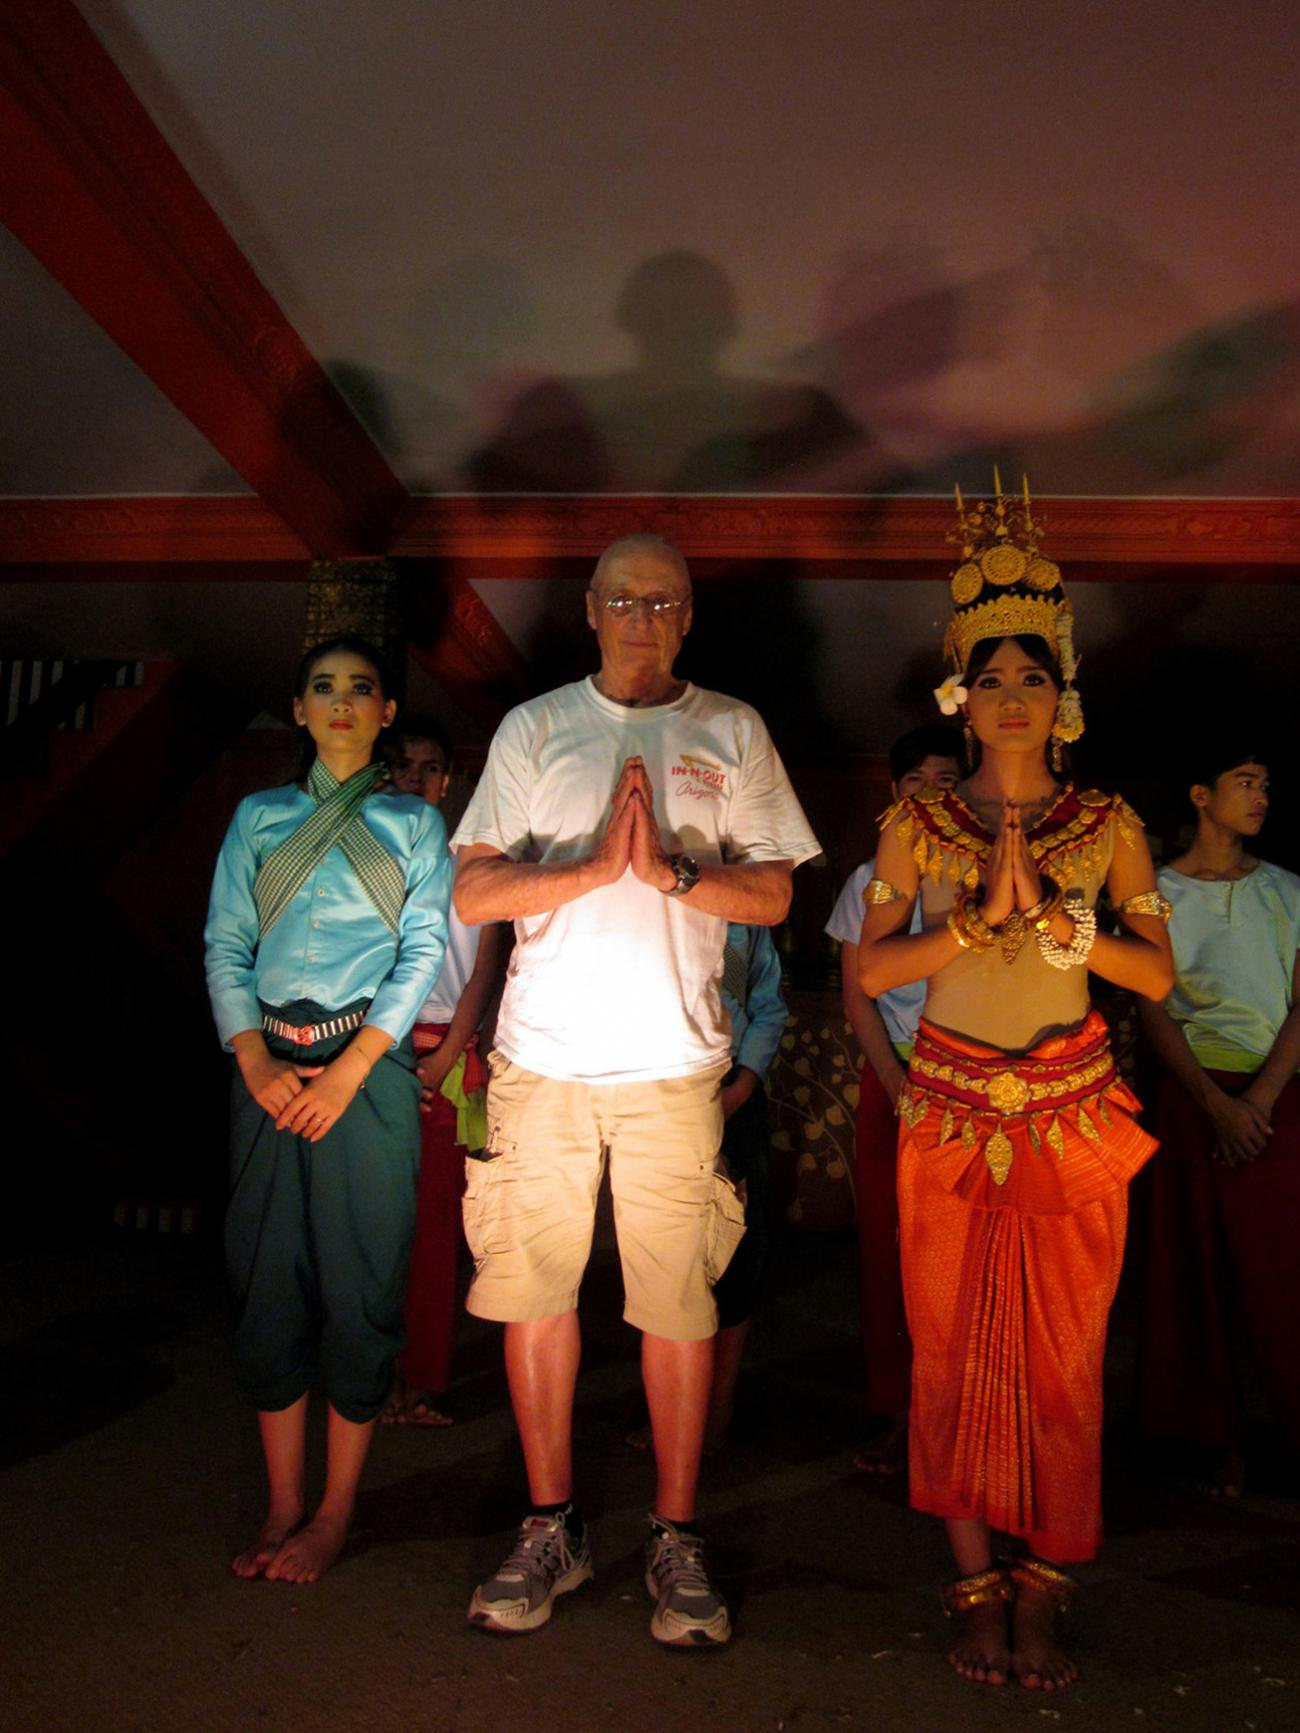 Posing with the Temple Dancers